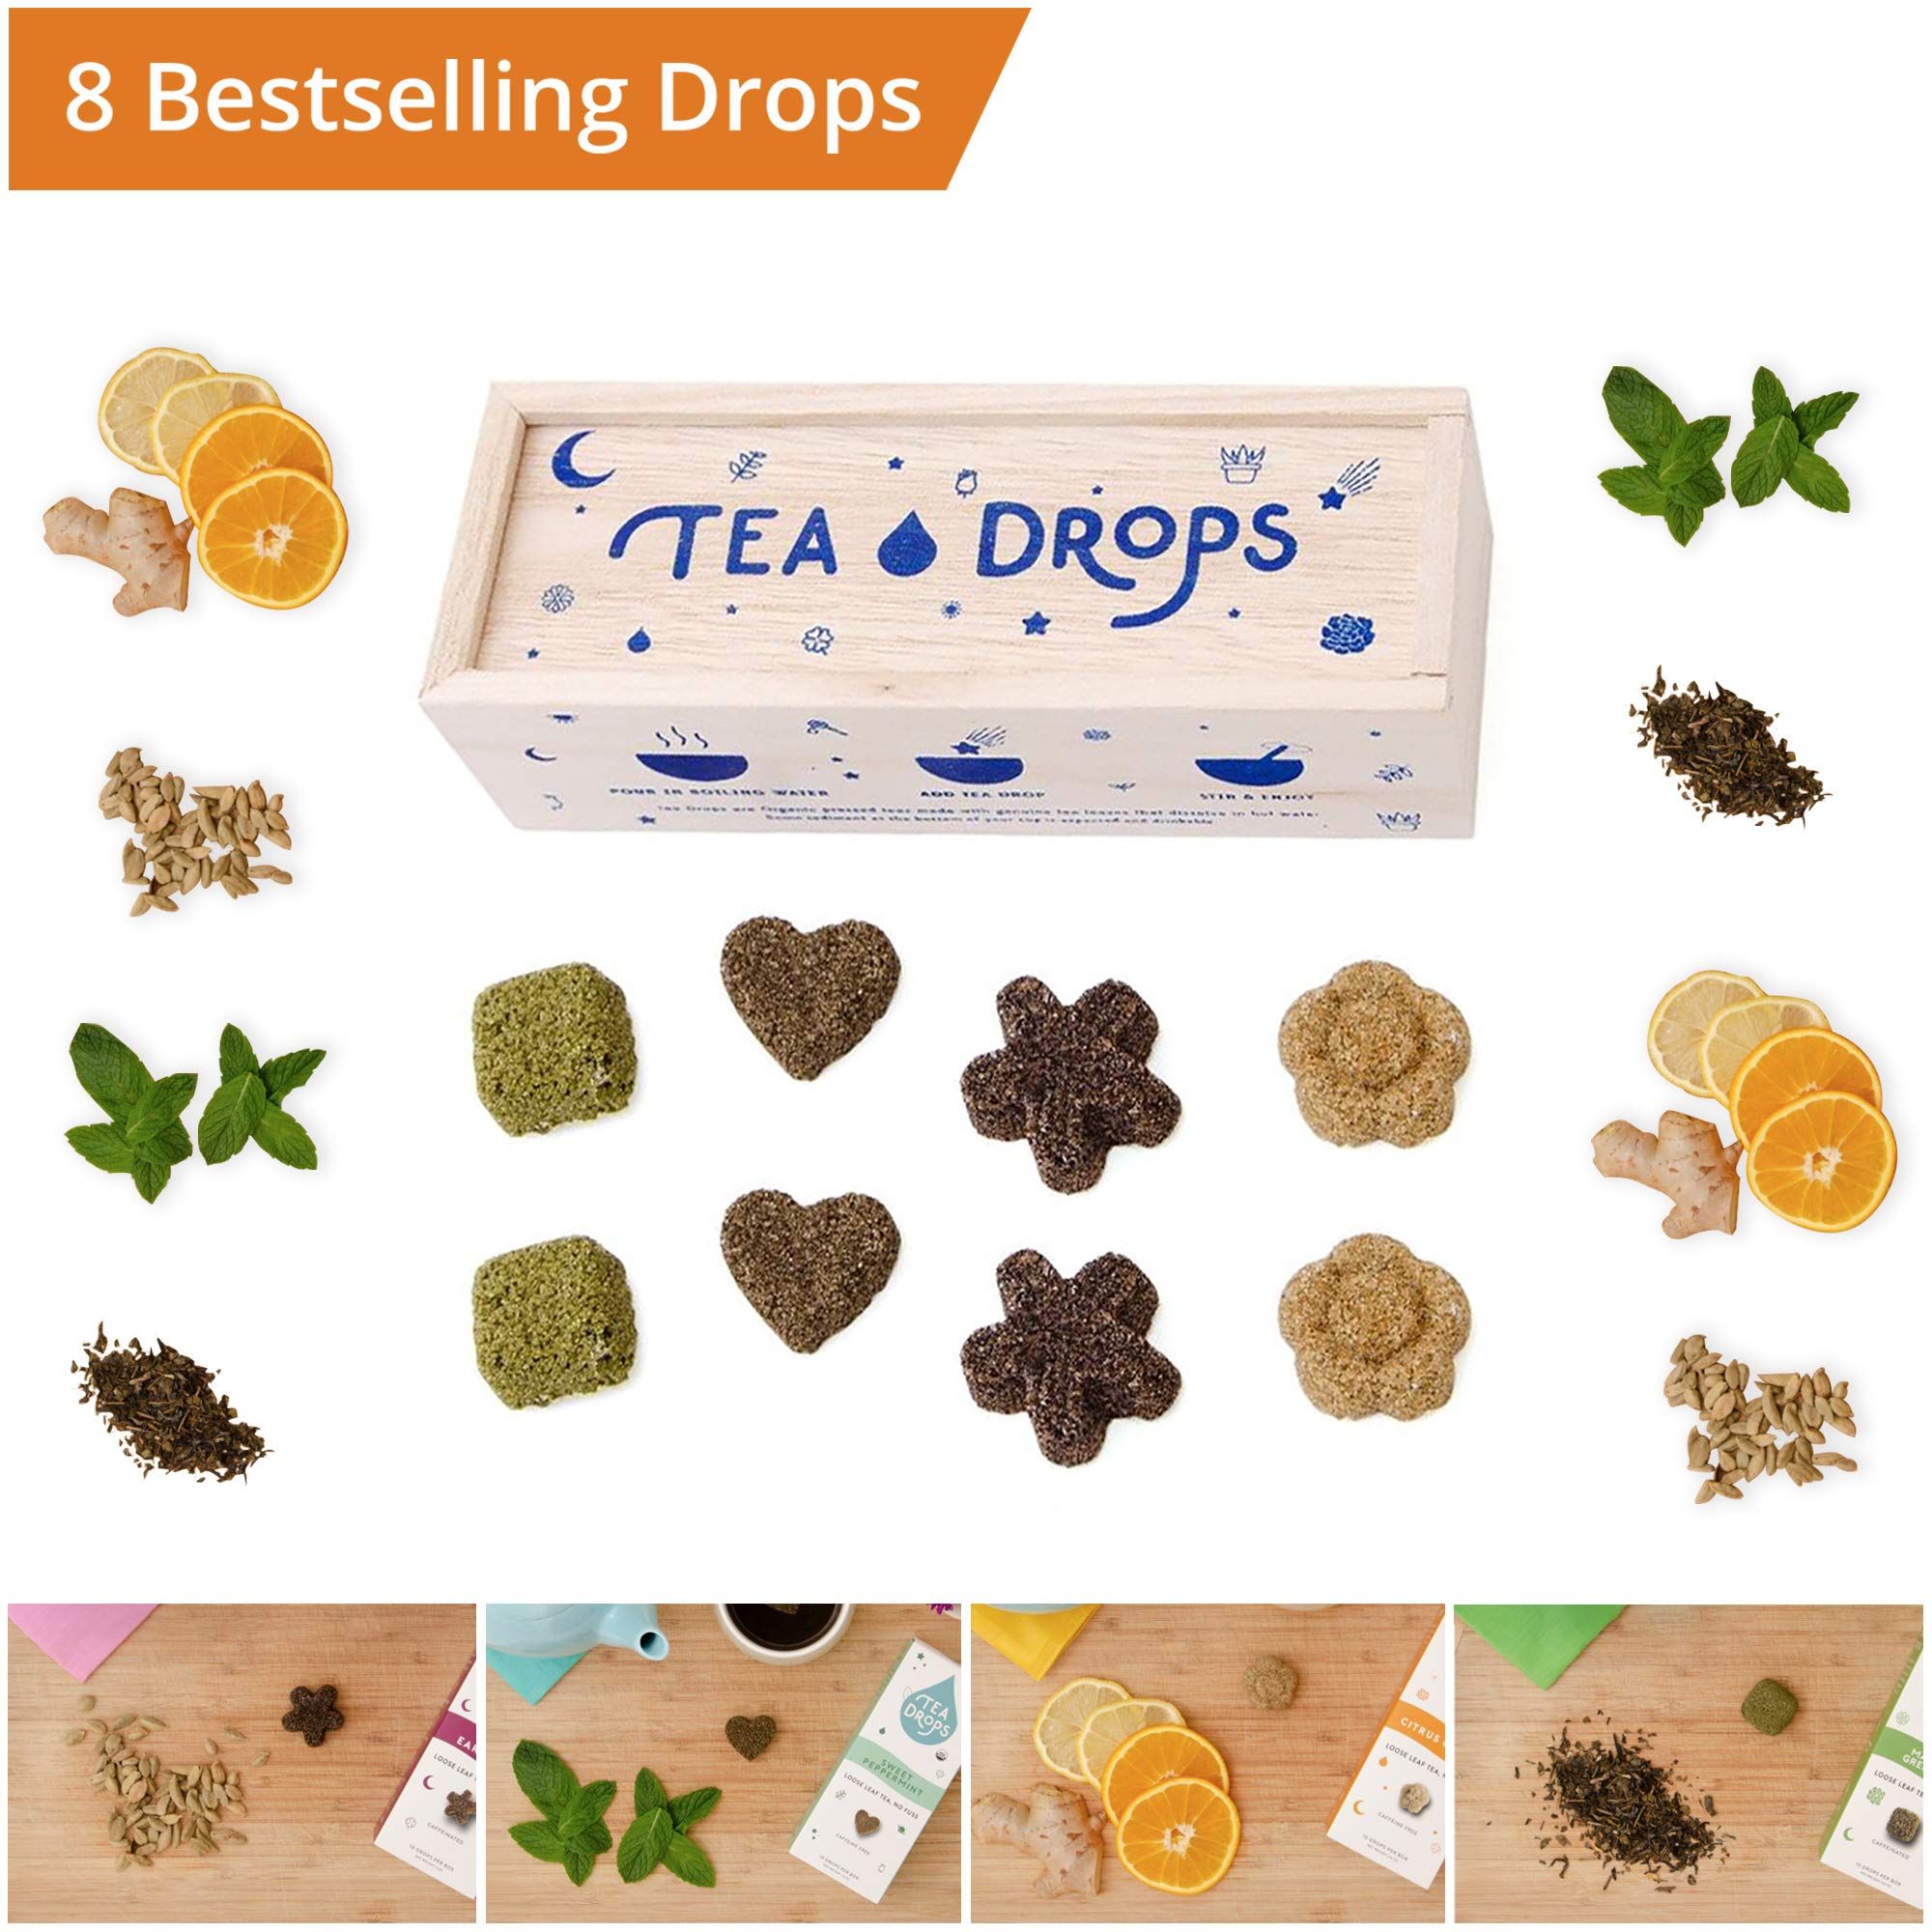 Tea Drops | Instant Organic Tea | Medium Tea Sampler Box | 8 Handcrafted Best Selling Tea Drops | Great-Gift Set For Tea Lovers